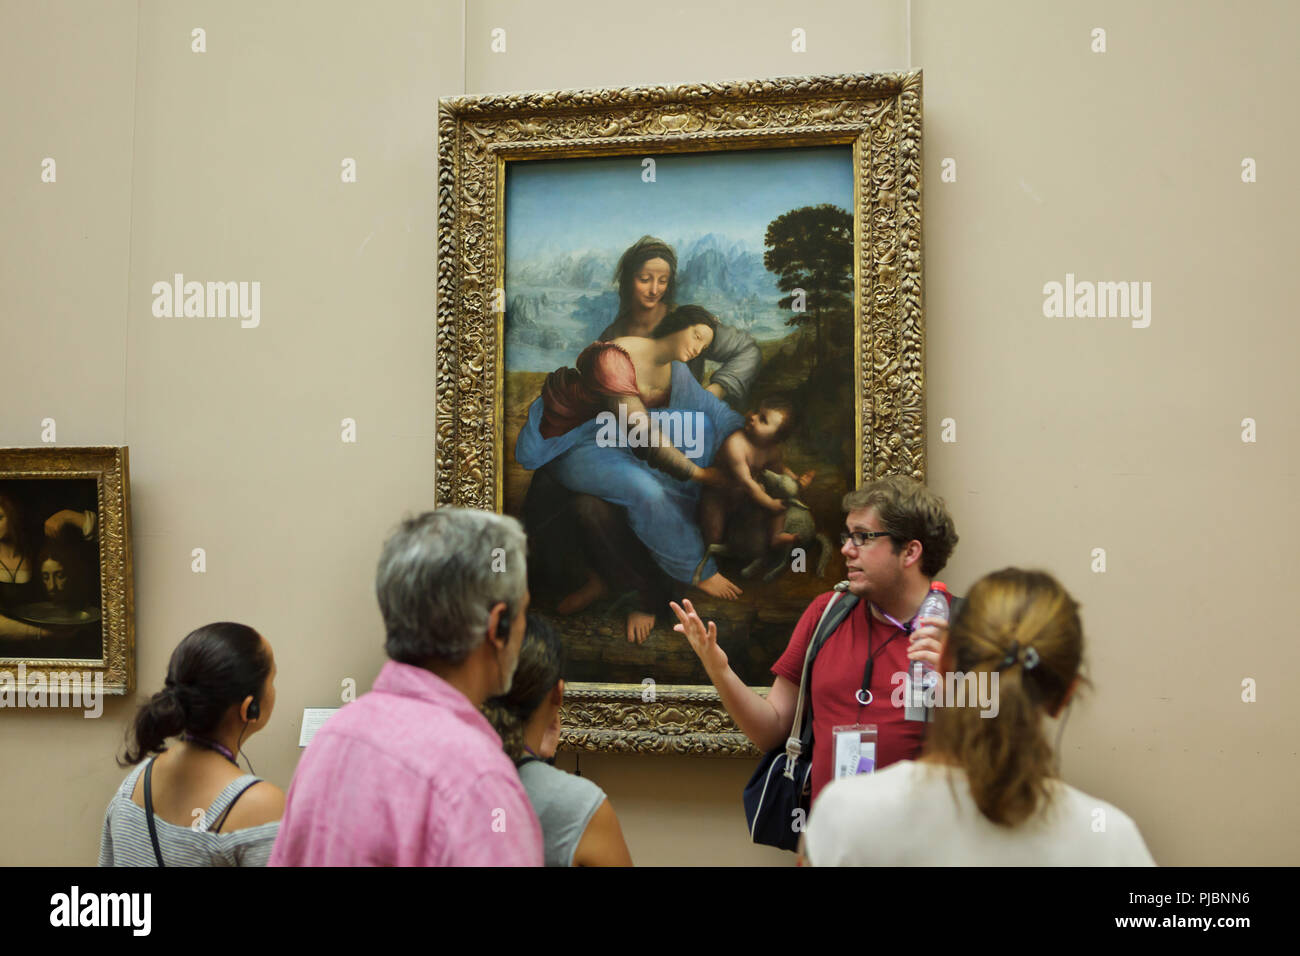 Guided tour in front of the painting 'Virgin and Child with Saint Anne' by Italian Renaissance painter Leonardo da Vinci (ca. 1503) displayed in the Louvre Museum in Paris, France. - Stock Image